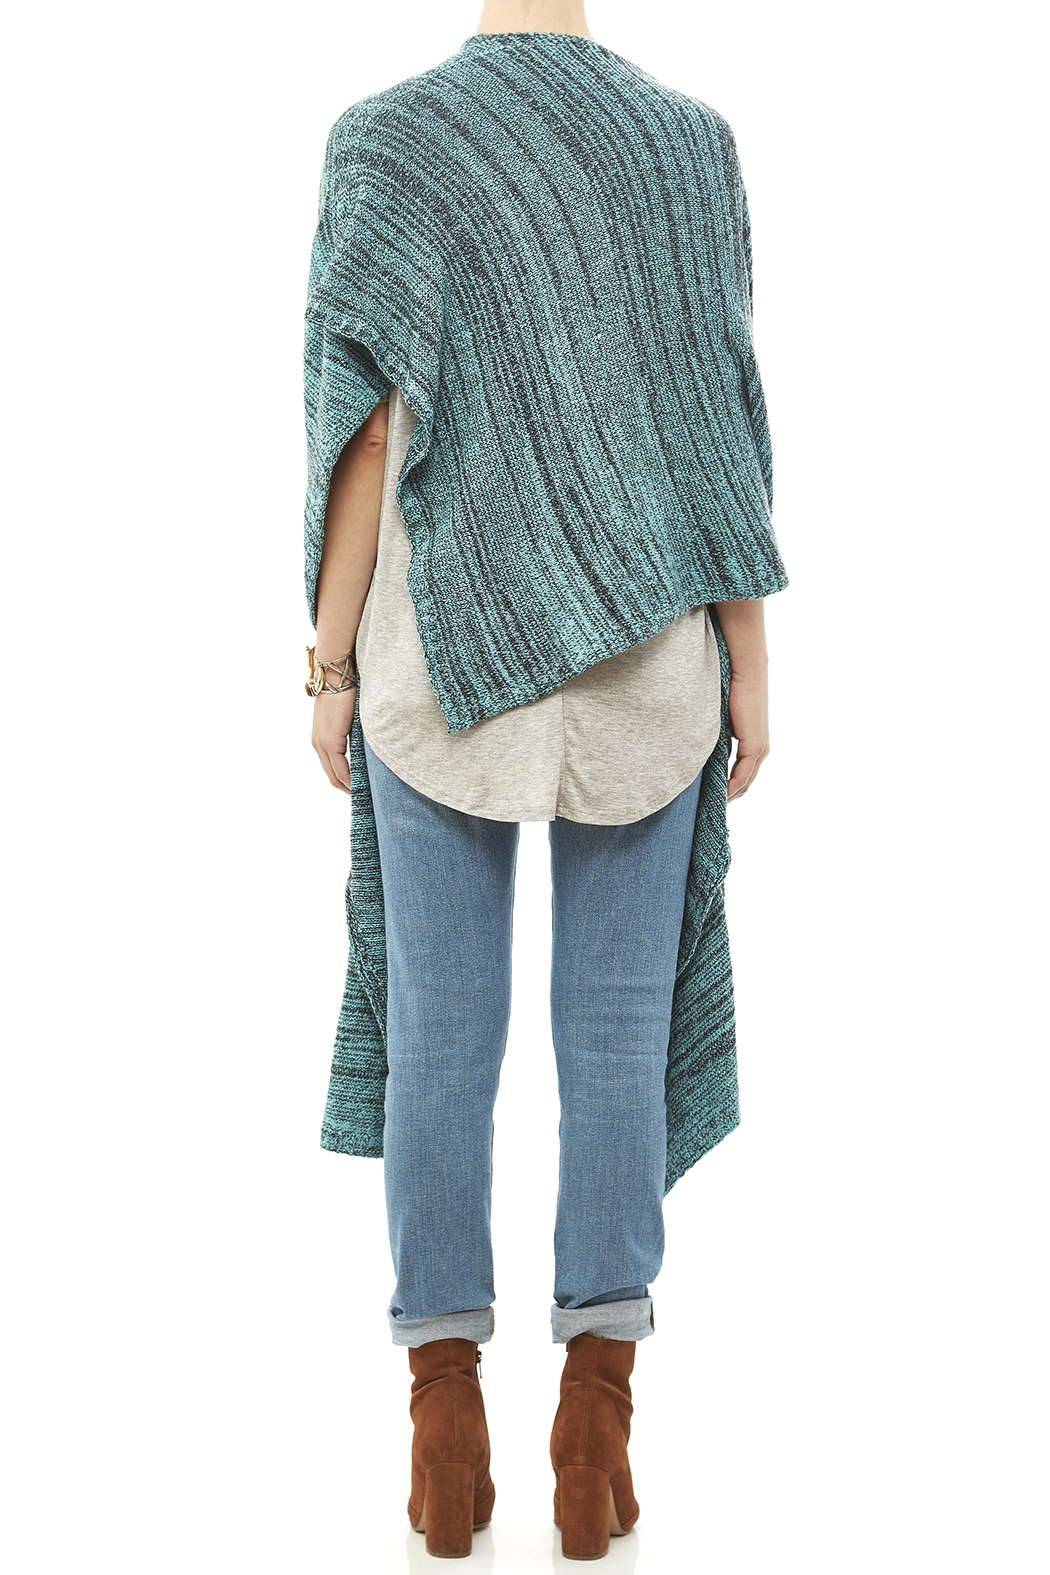 DC KNITS Anthracite Cashmere Ruana - Back Cropped Image